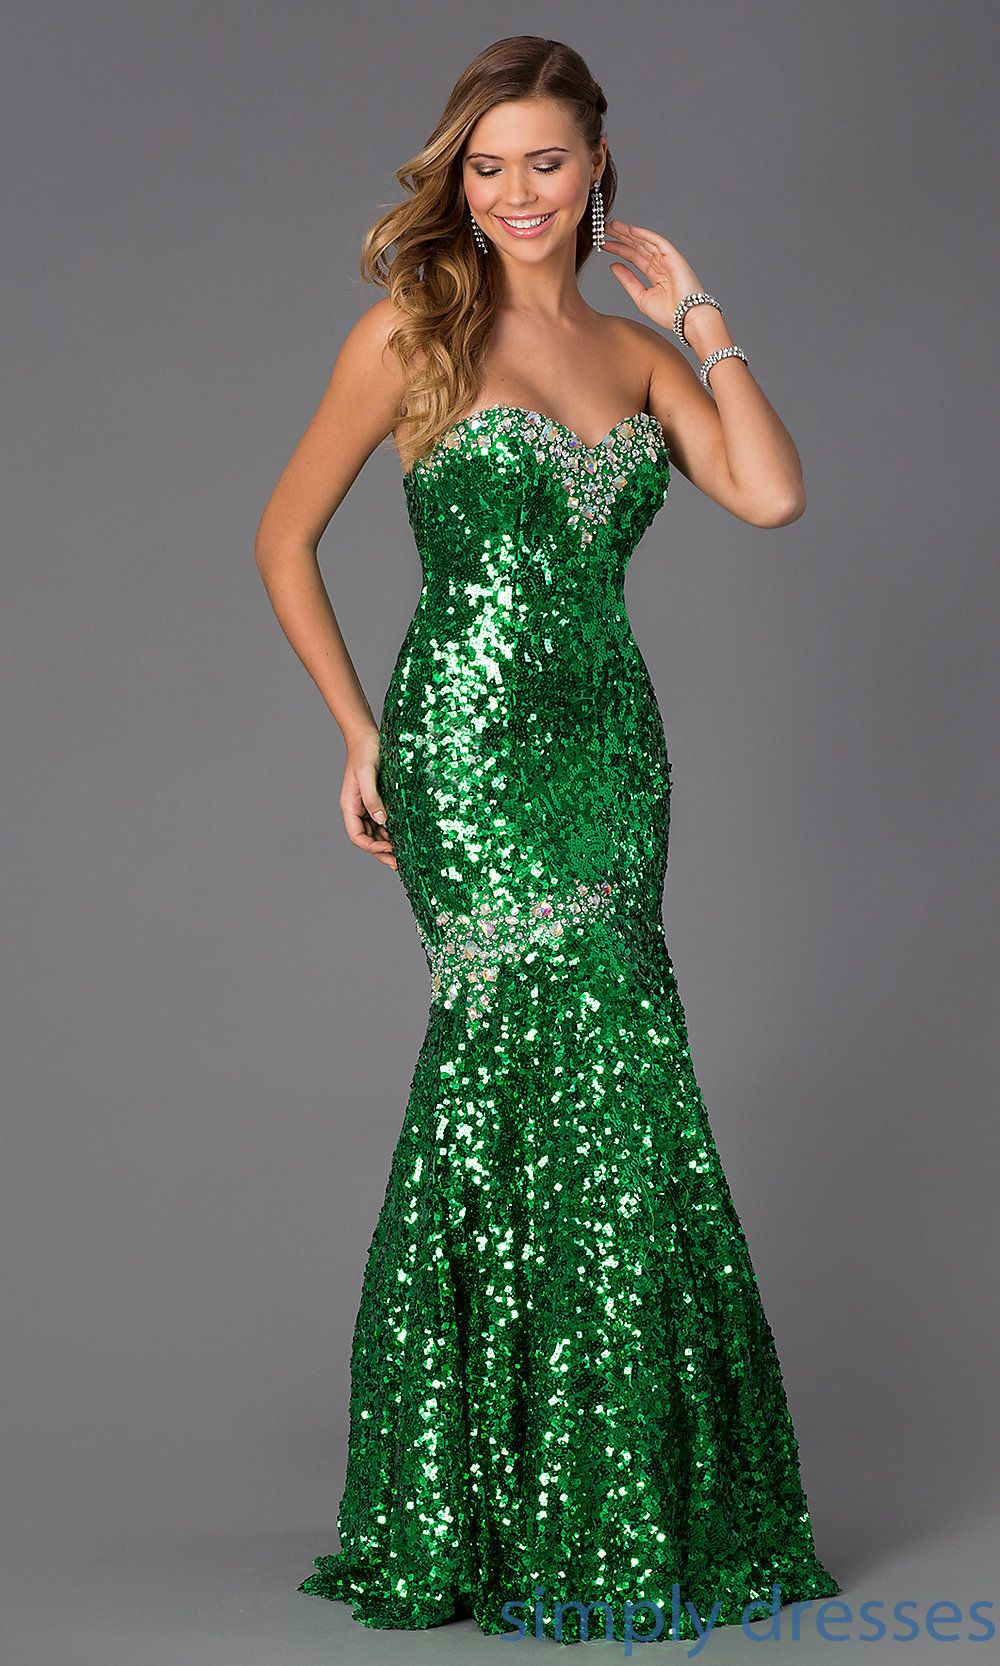 Green Strapless Sequin Mermaid Gown Beautiful Prom Dresses Sparkly Dress Prom Dresses [ 1666 x 1000 Pixel ]